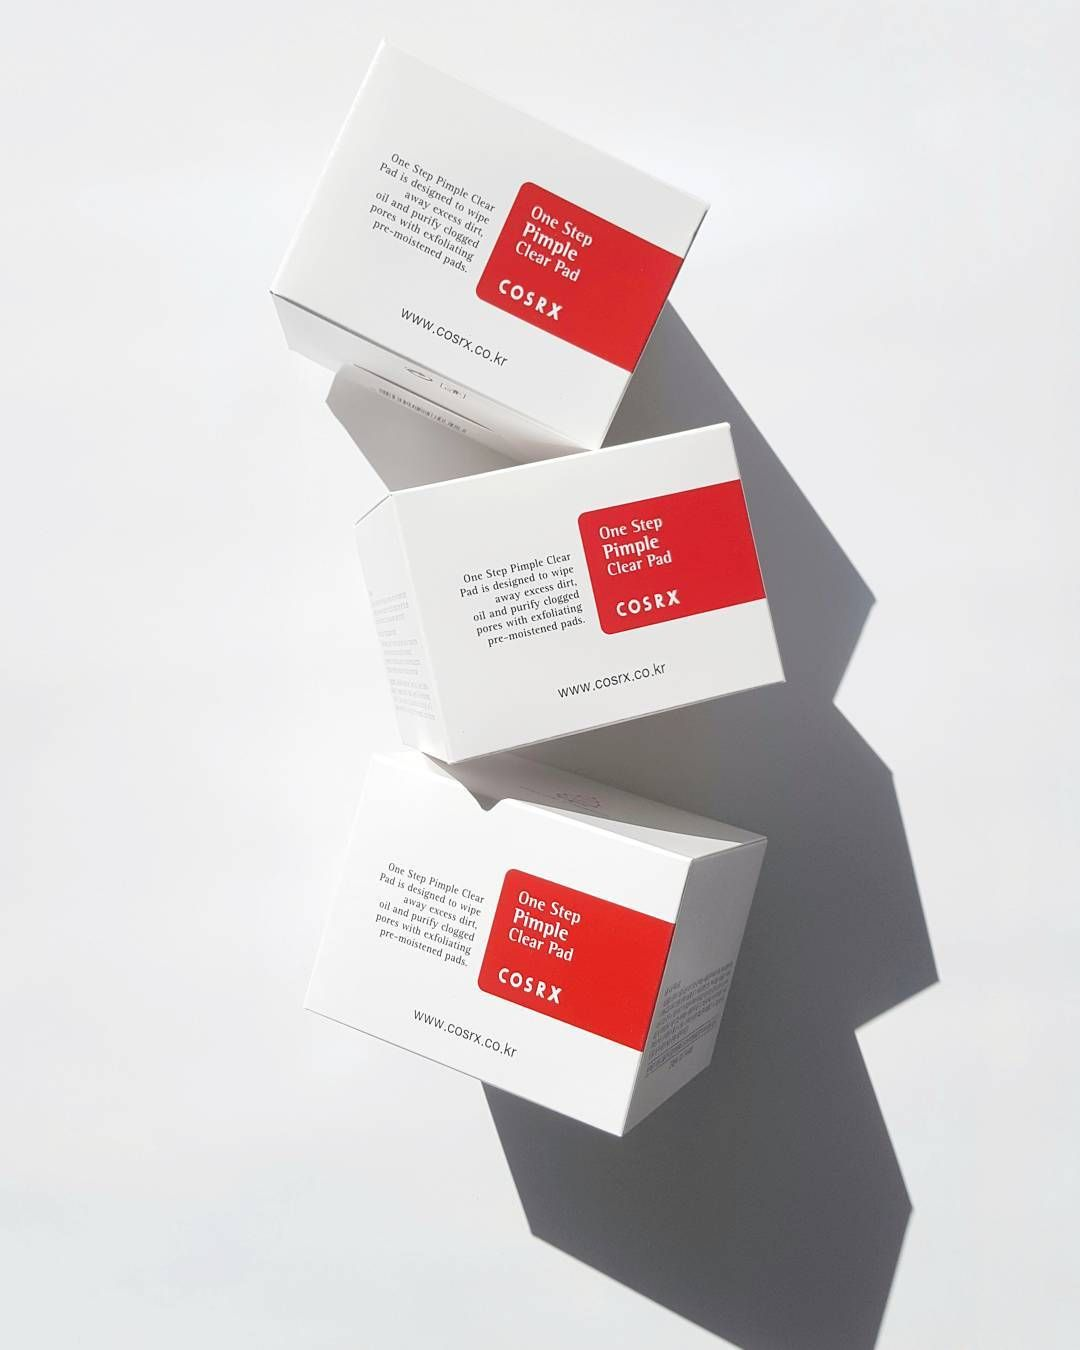 The One Step Pimple Clear Pad Has Won Numerous Awards And Remains On Many Best Seller Lists Cosrx First Step Pimples